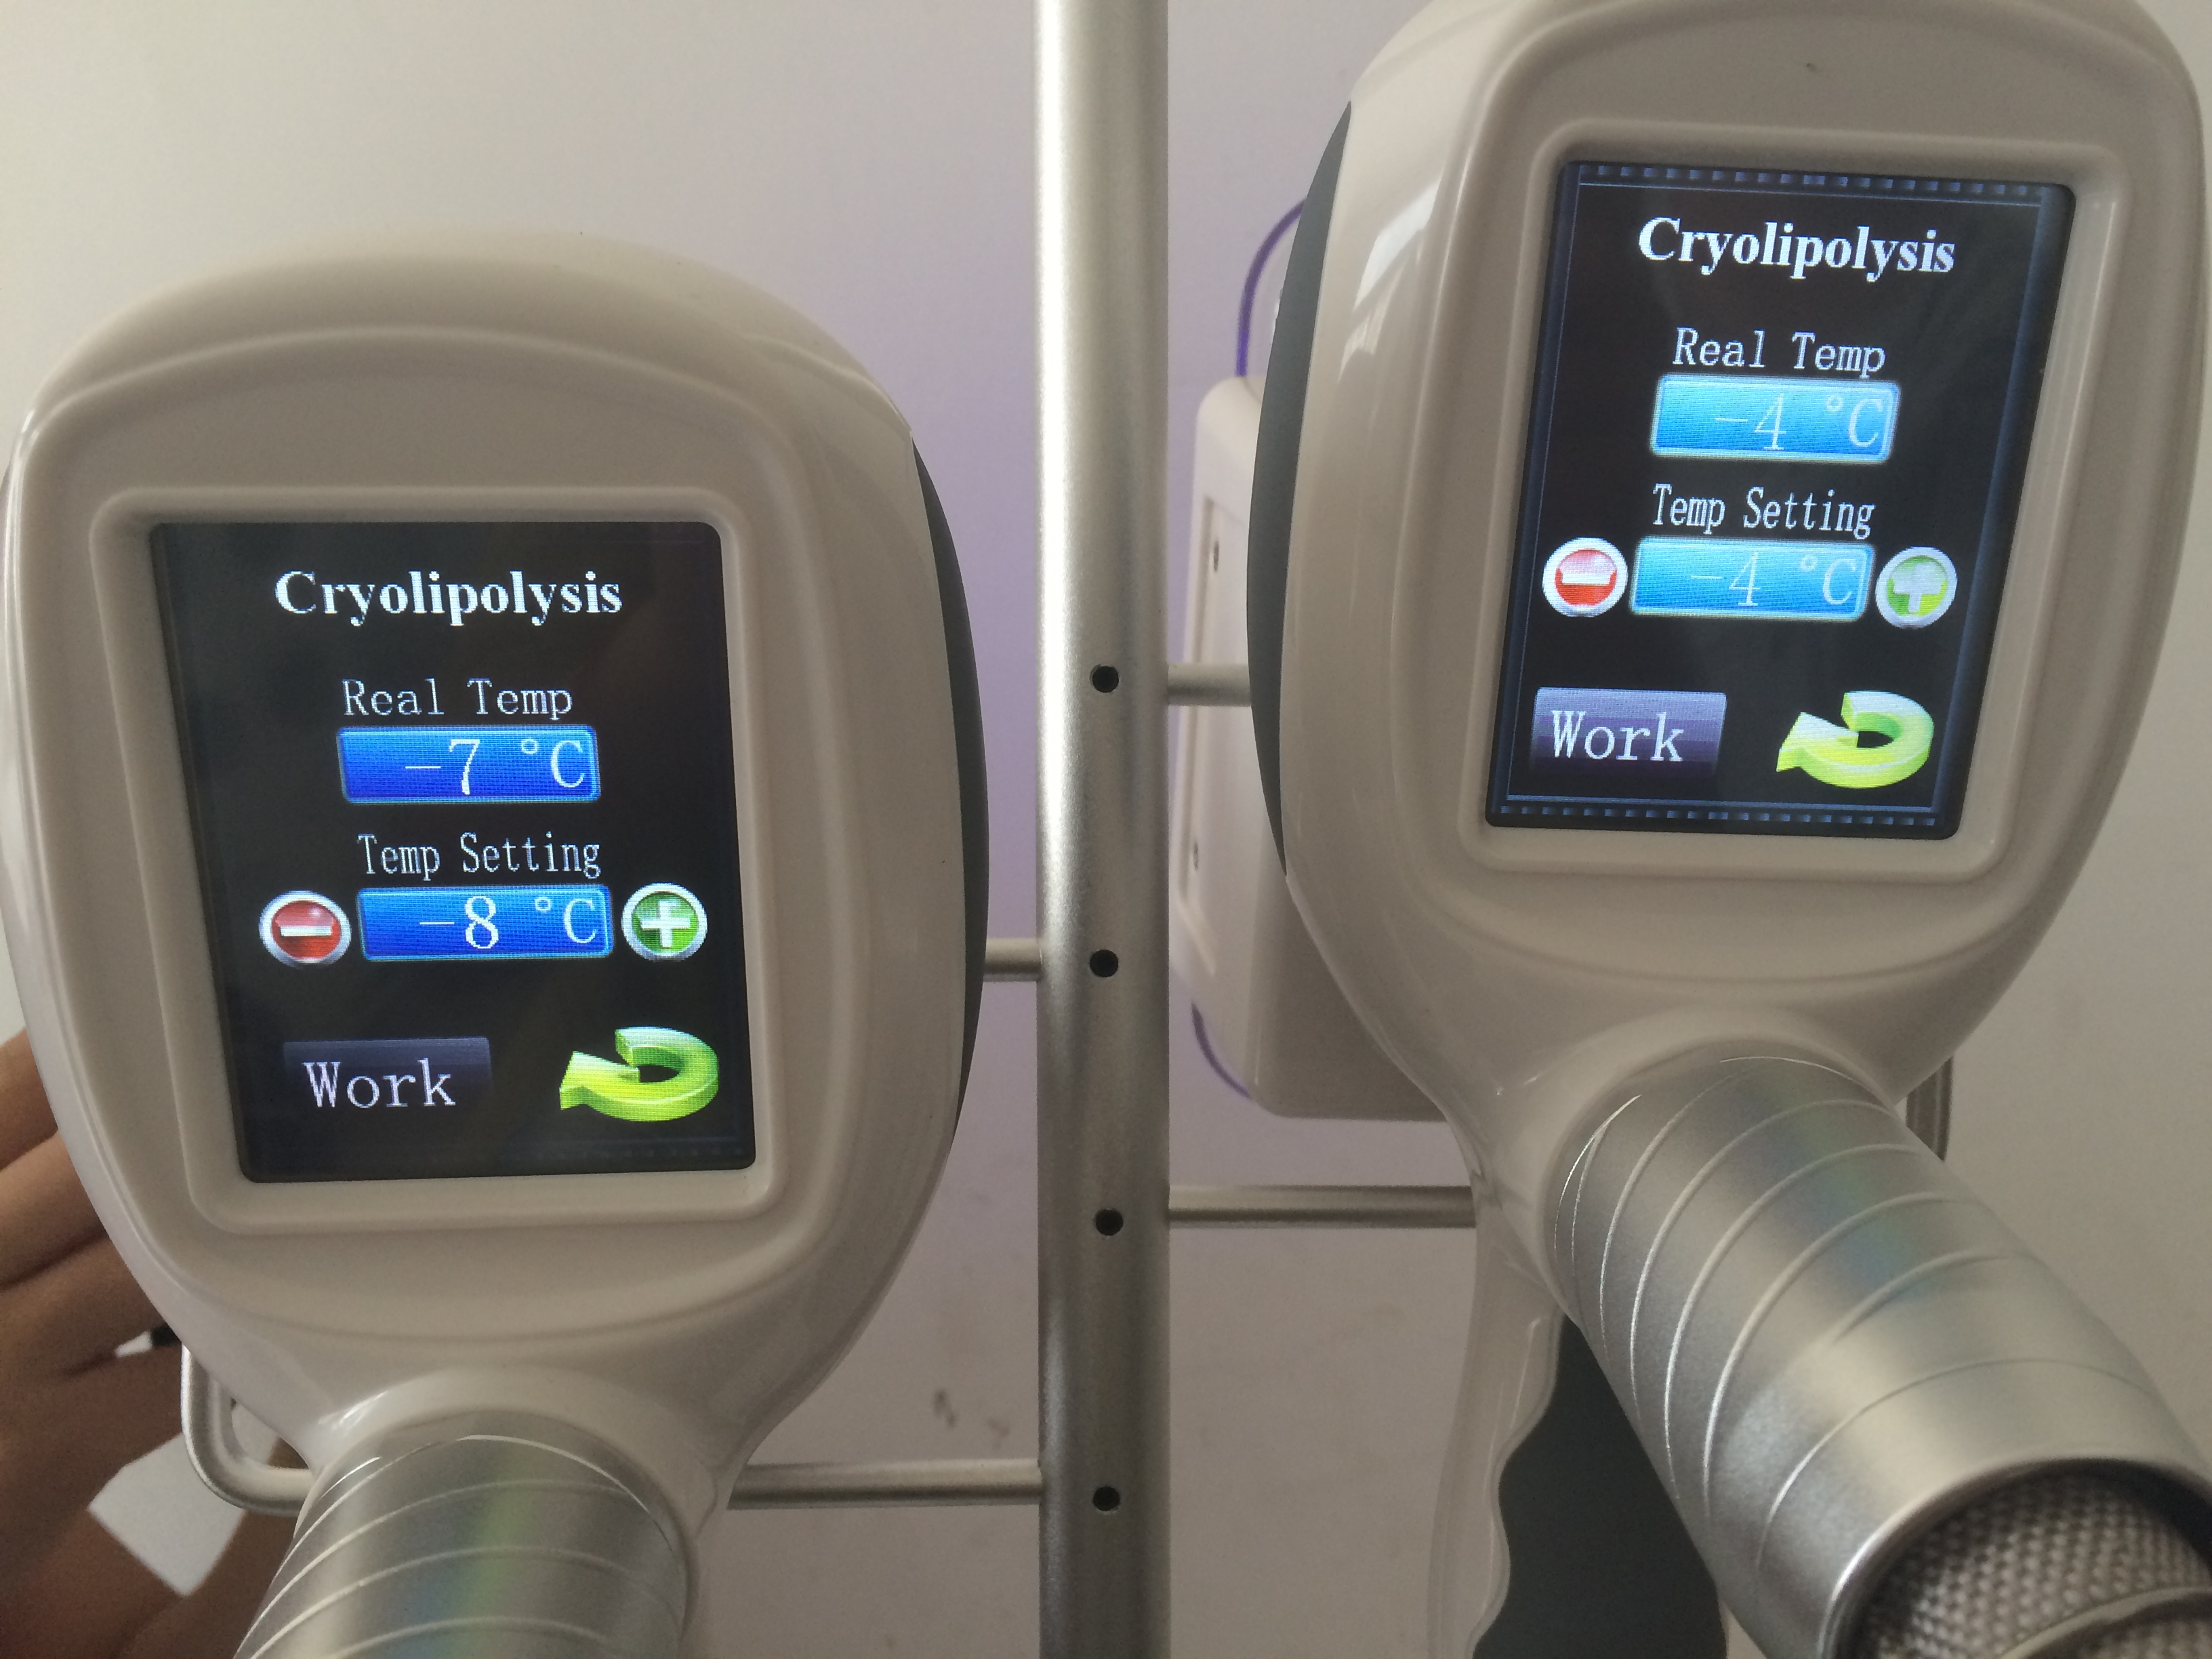 Cryolipolysis Fat Freeze Slimming Coolsculpting Cryolipolysis Machine